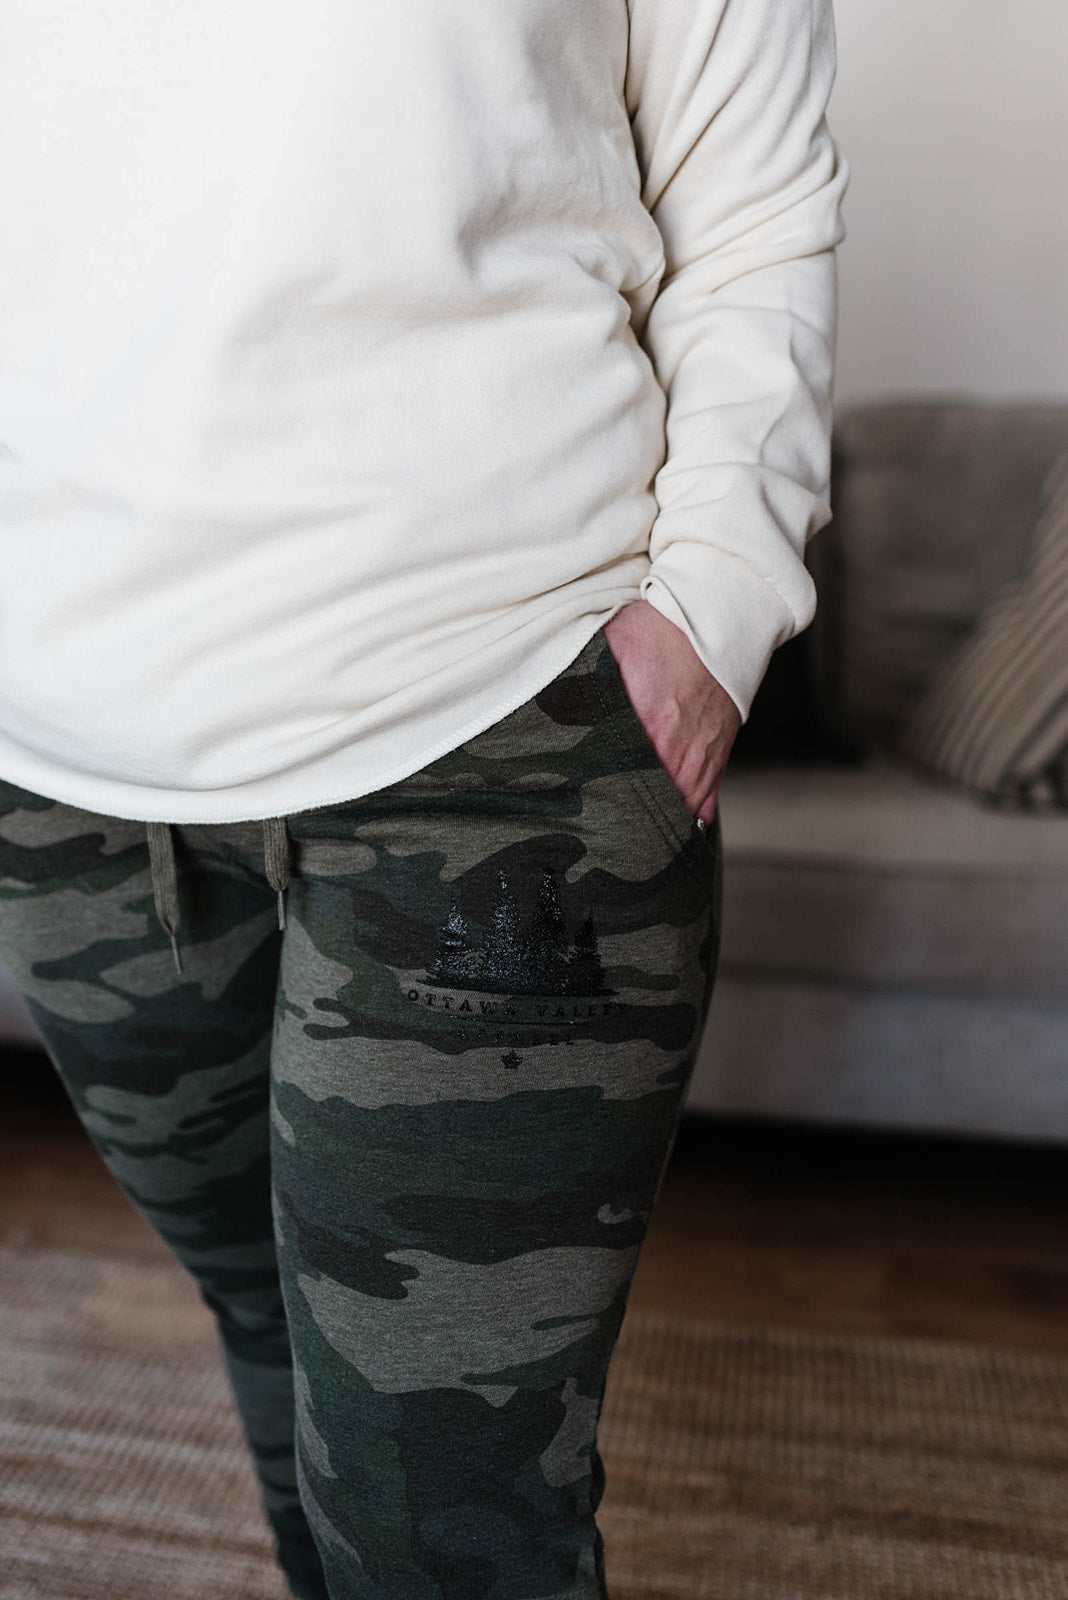 OVA Women's Luxe Sweatpants - Olive Camo